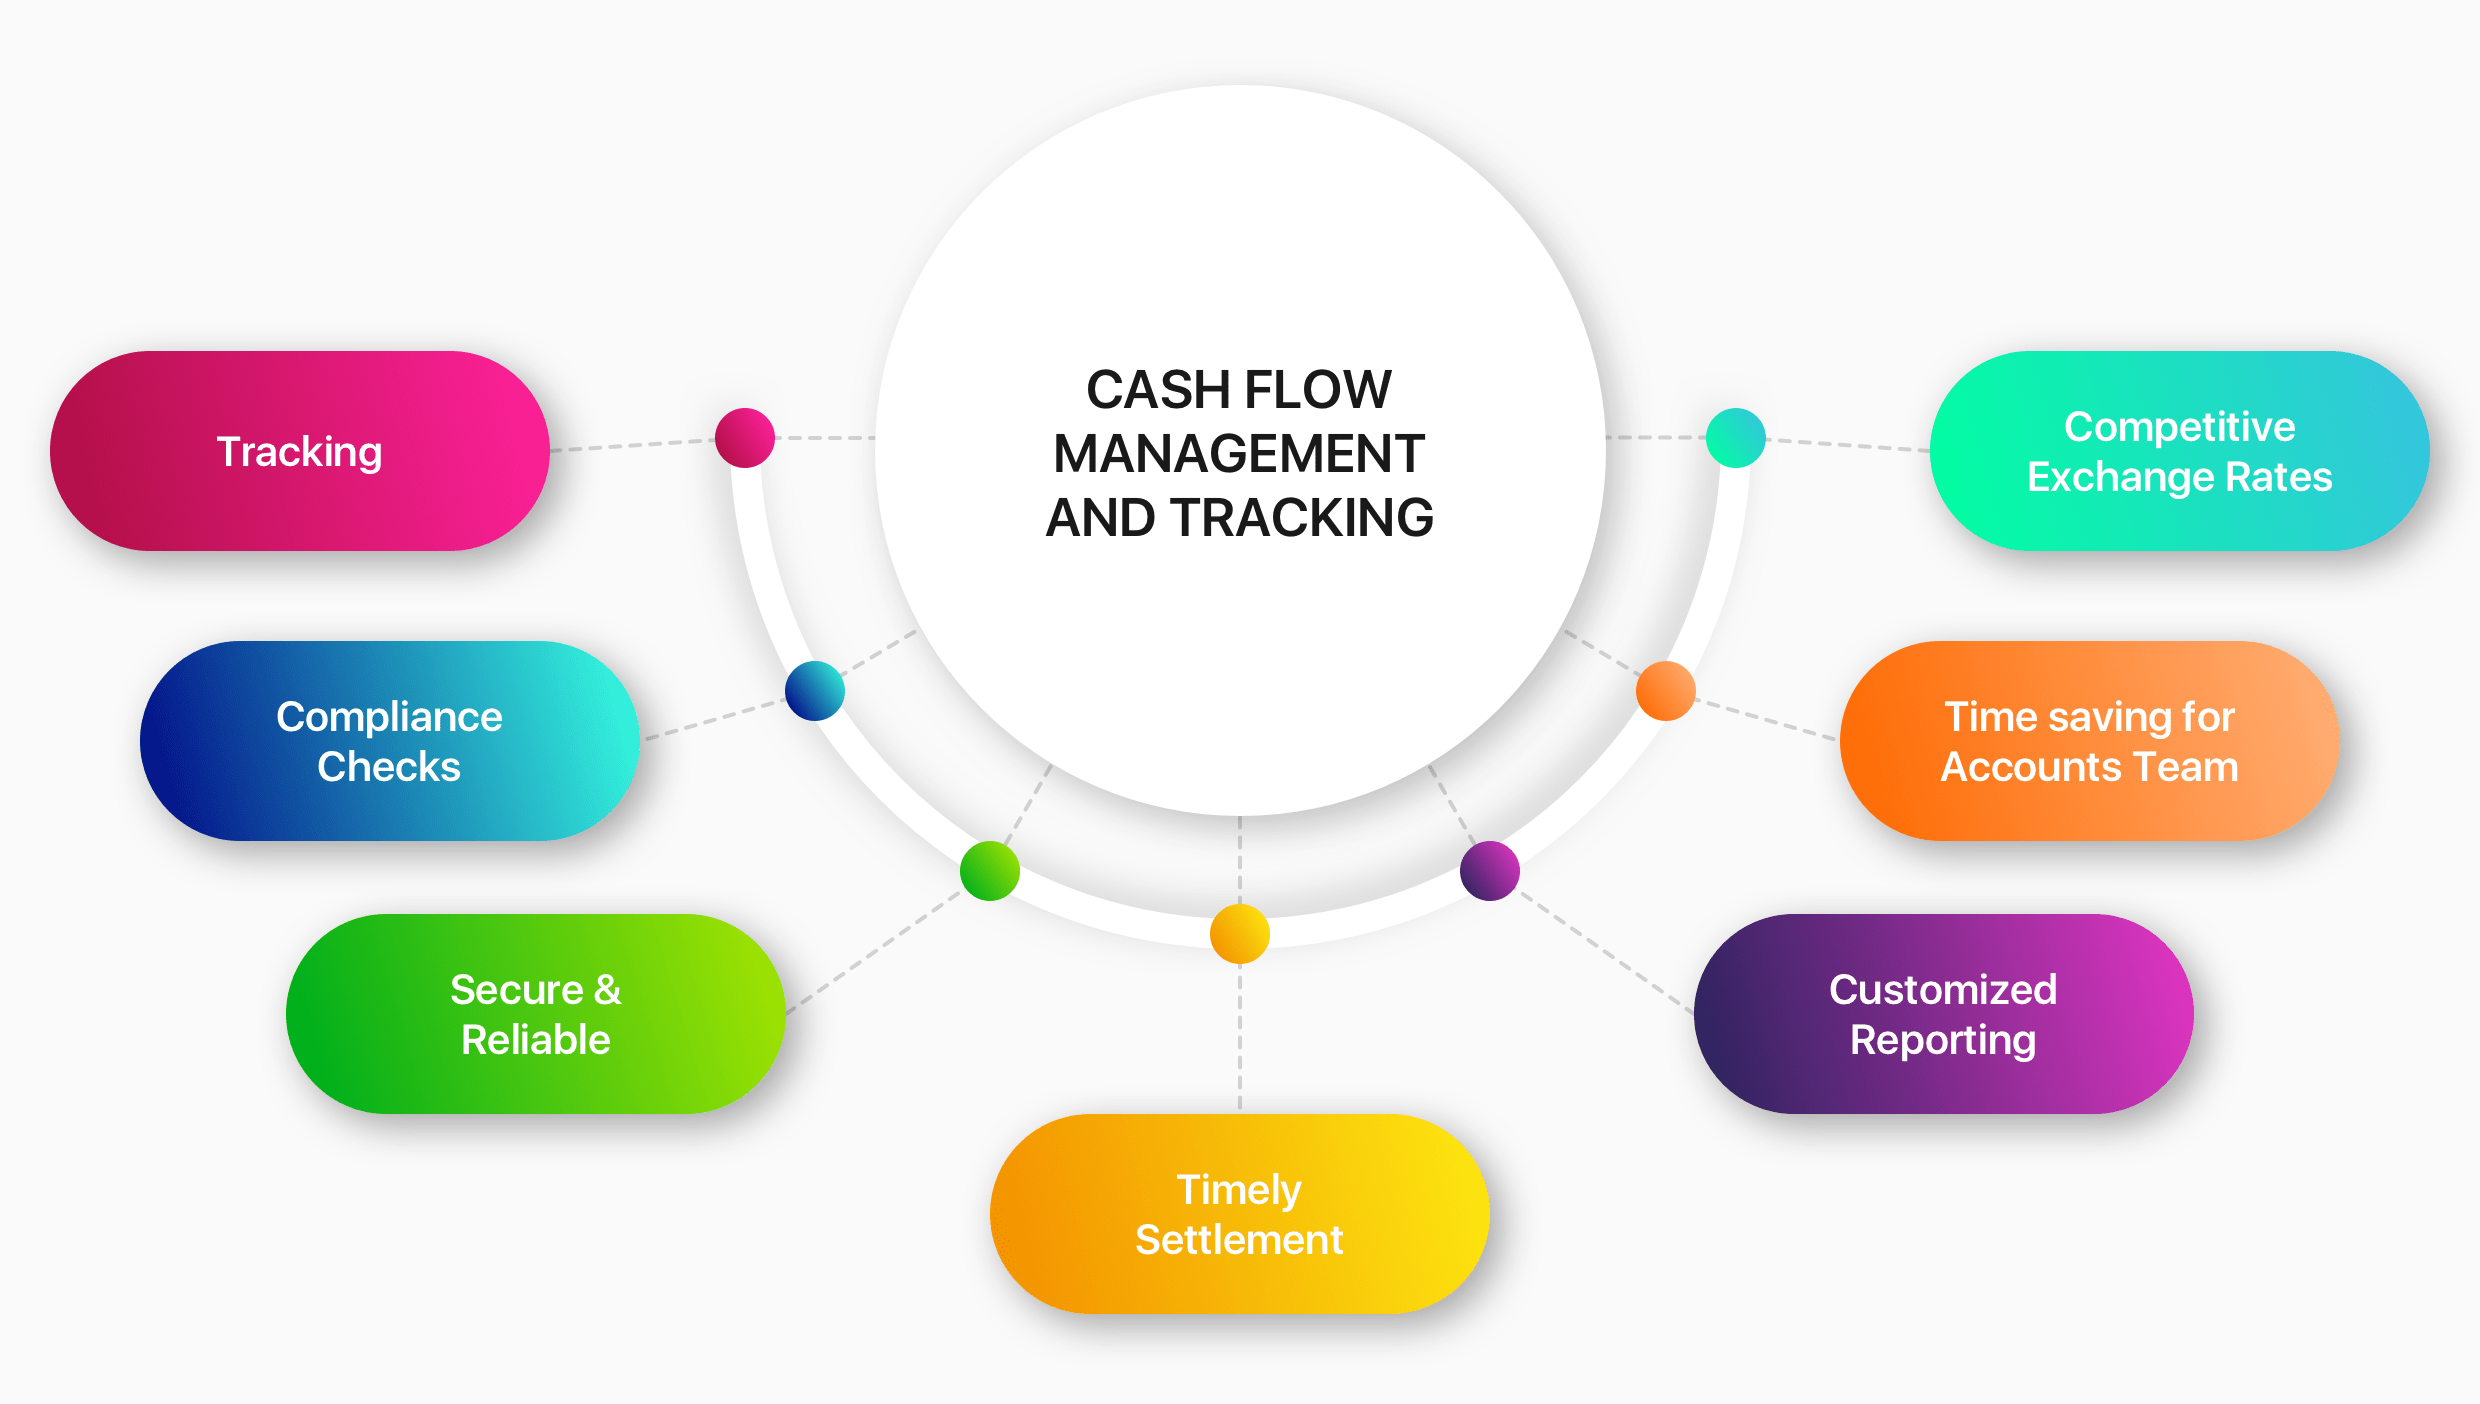 Cash Flow Management and Tracking feature